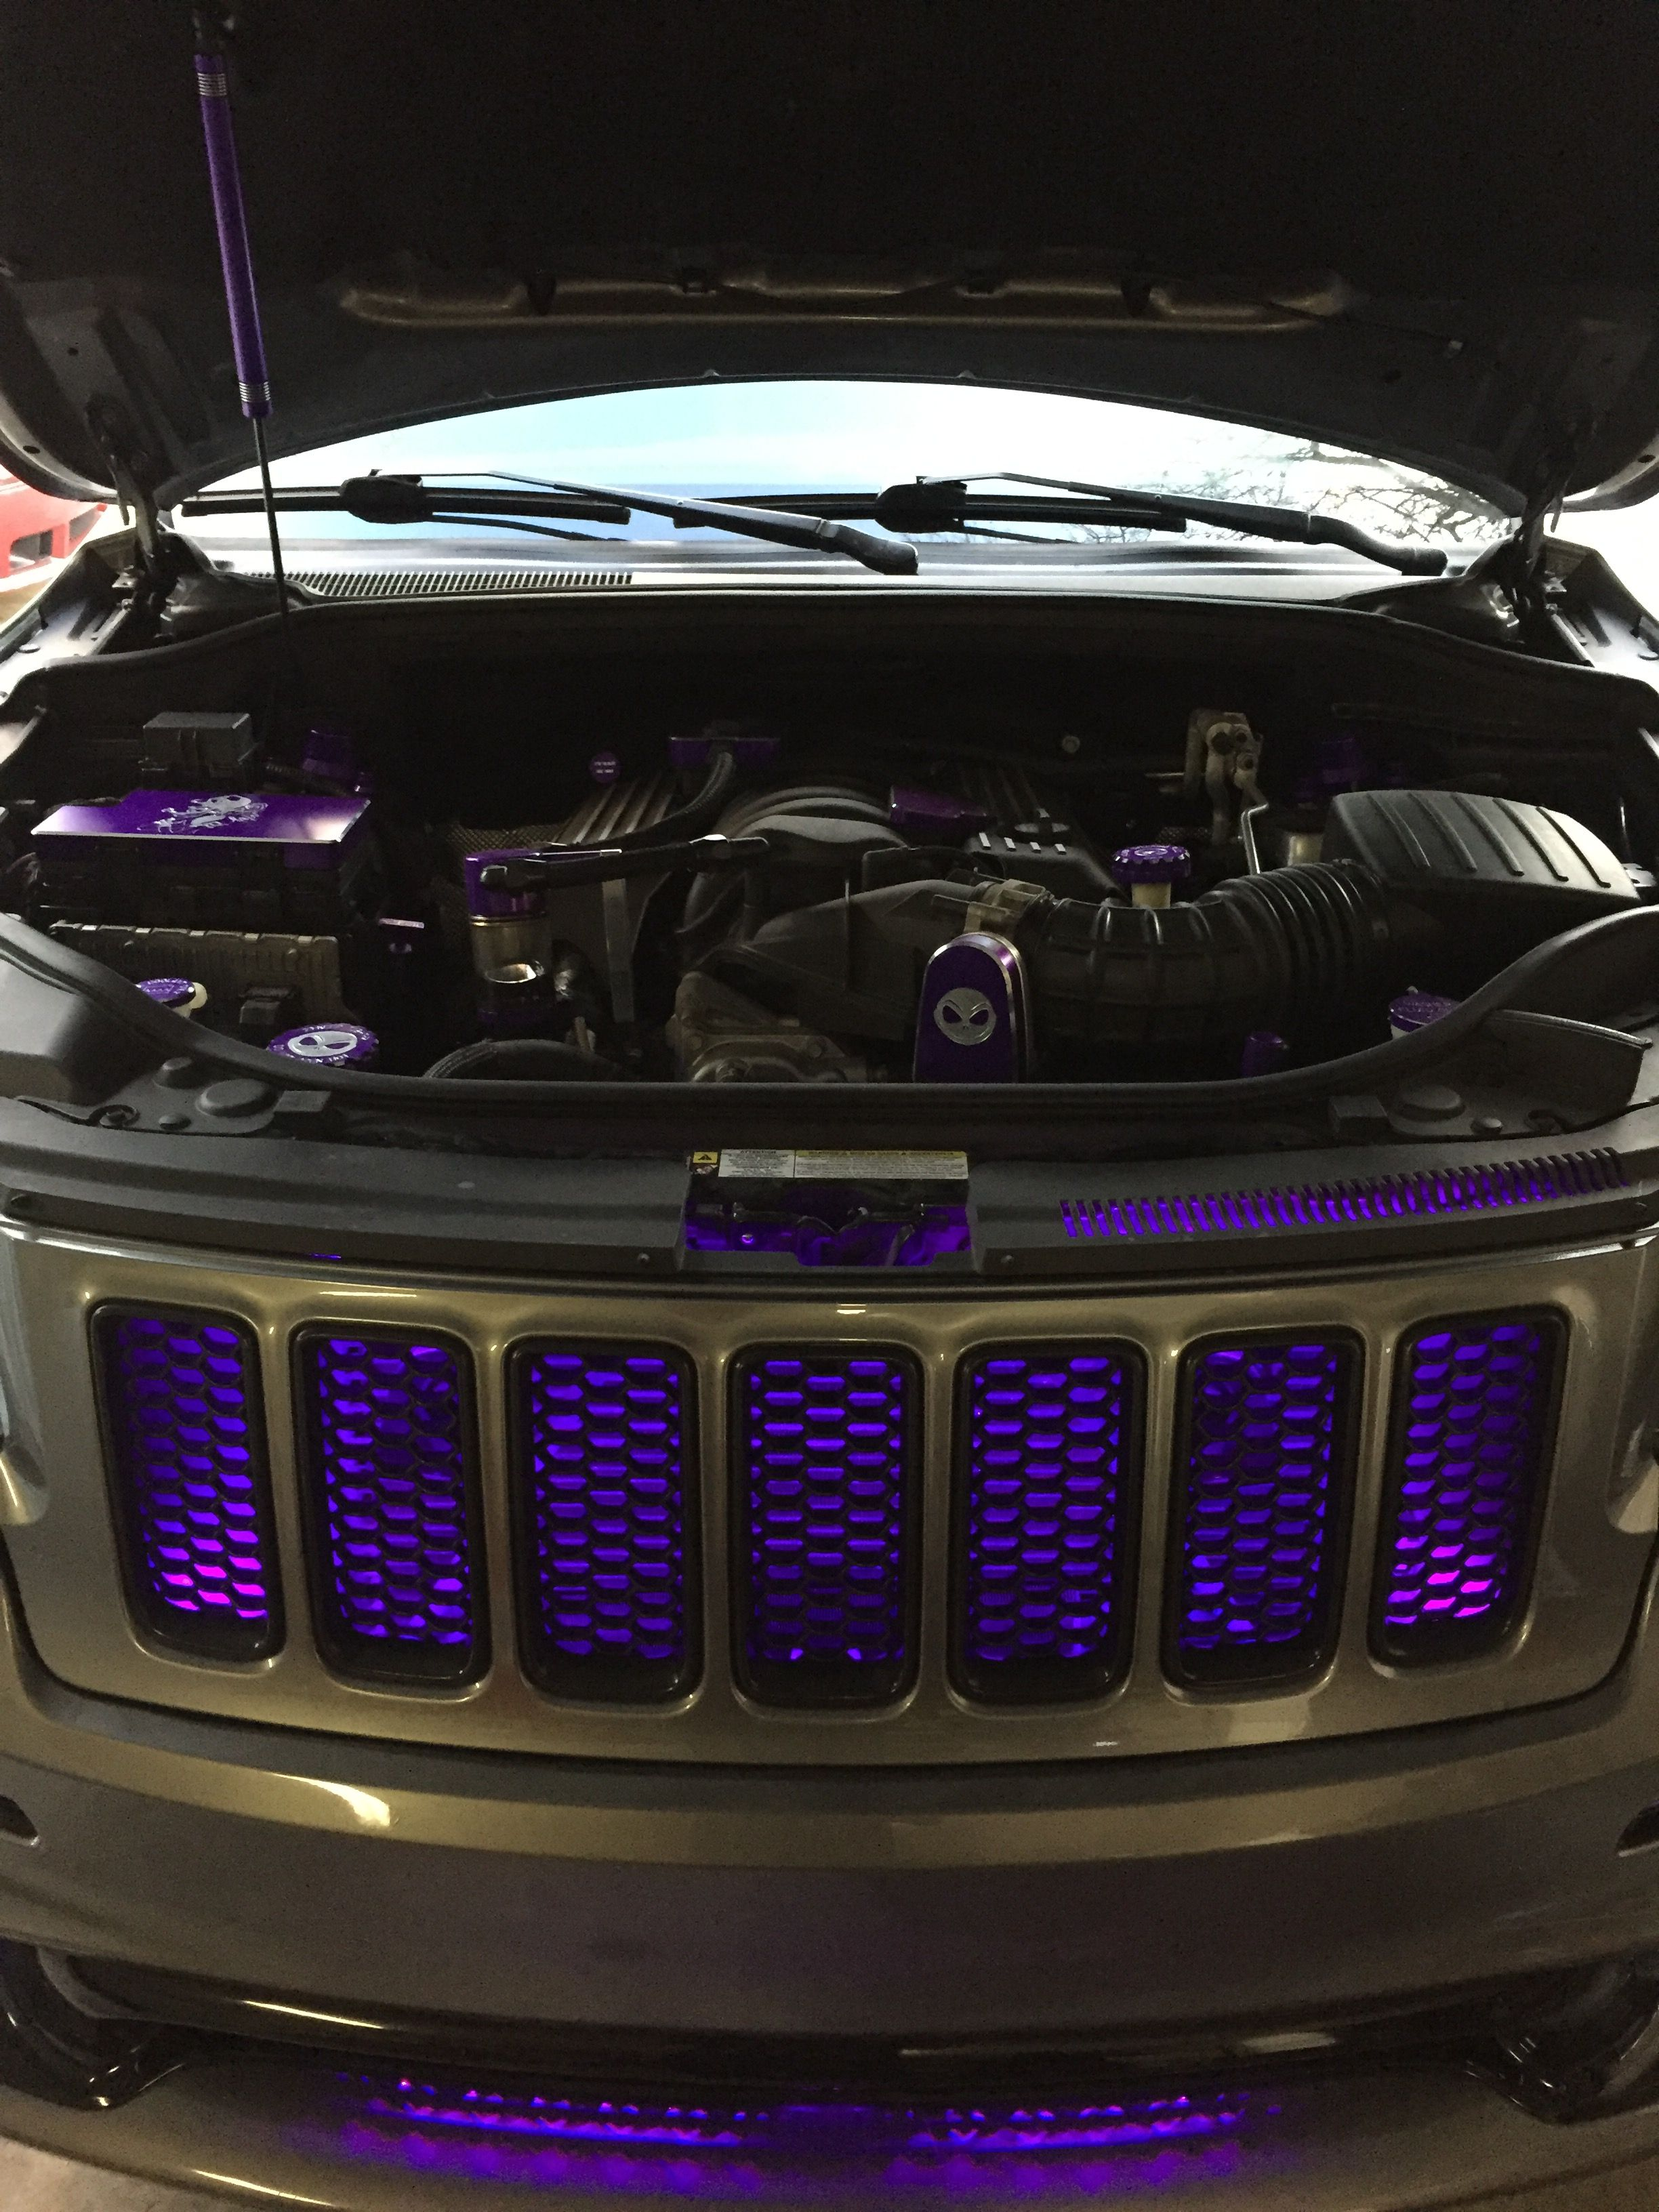 small resolution of 2012 jeep grand cherokee srt8 graphite with purple grill lights and purple billet technology under hood trim kit